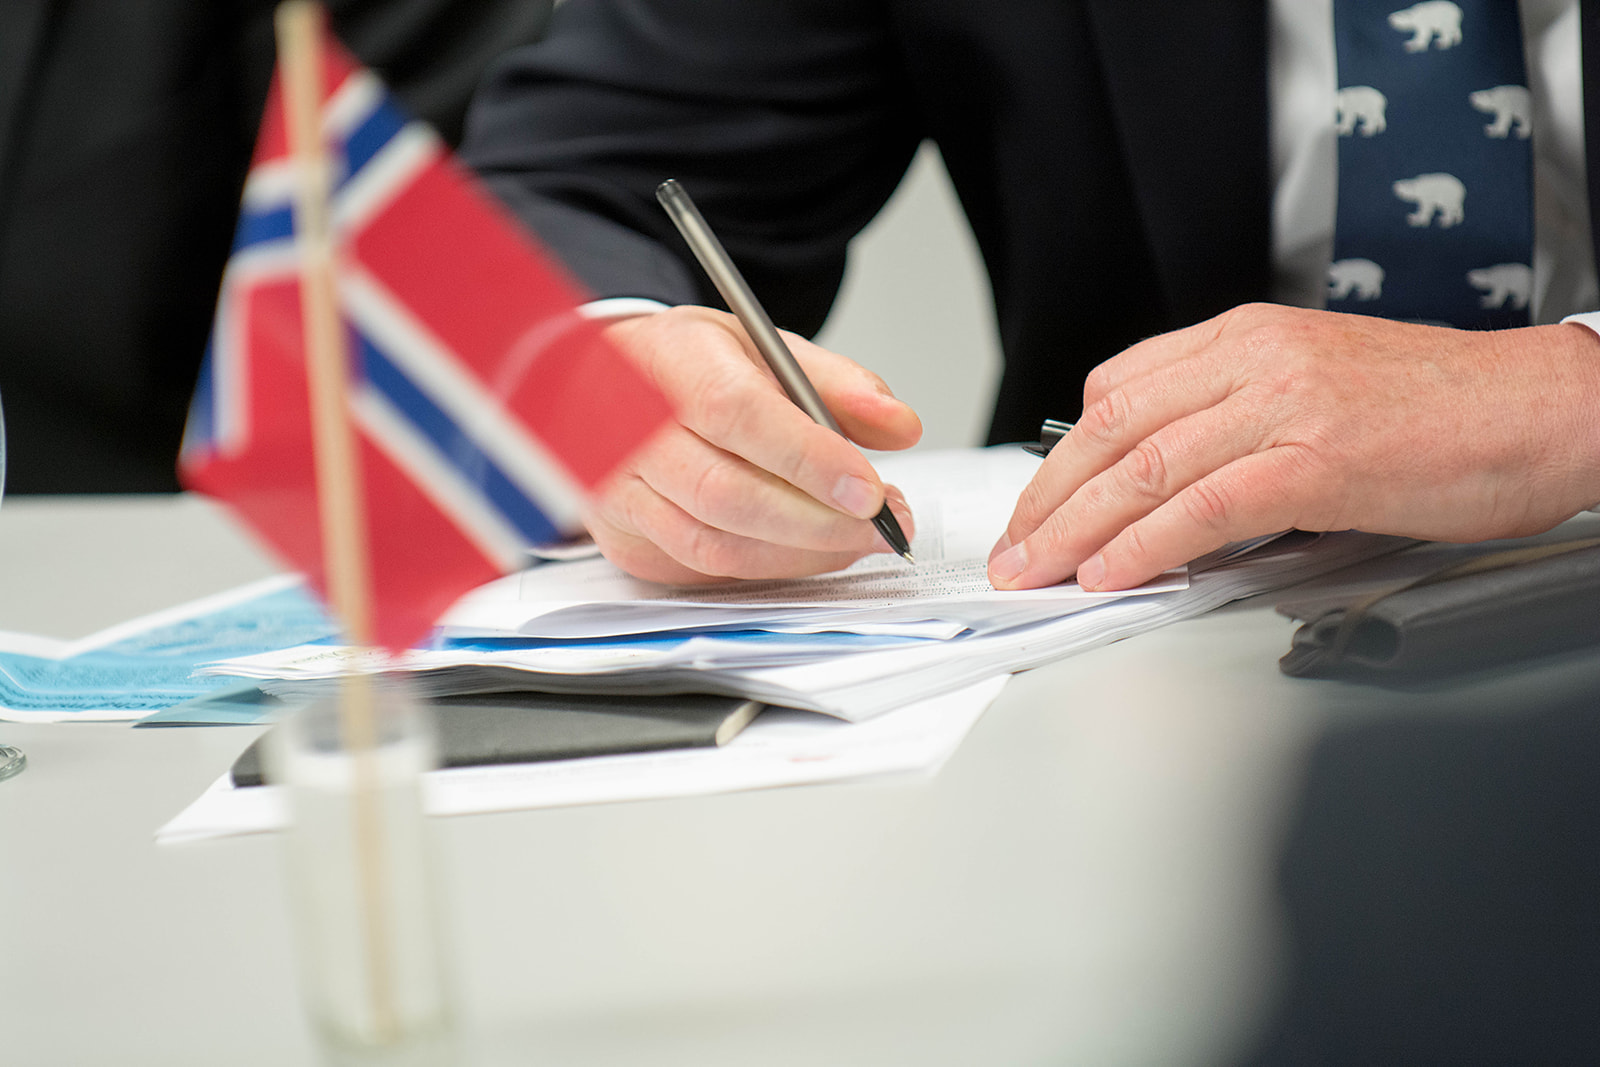 Who We Are - NACC-North provides bilateral commercial ties between the United States and Norway. The chapter is headquartered in Minneapolis, MN and serves a membership based in Minnesota, Iowa, North Dakota, South Dakota, and Montana.Learn More